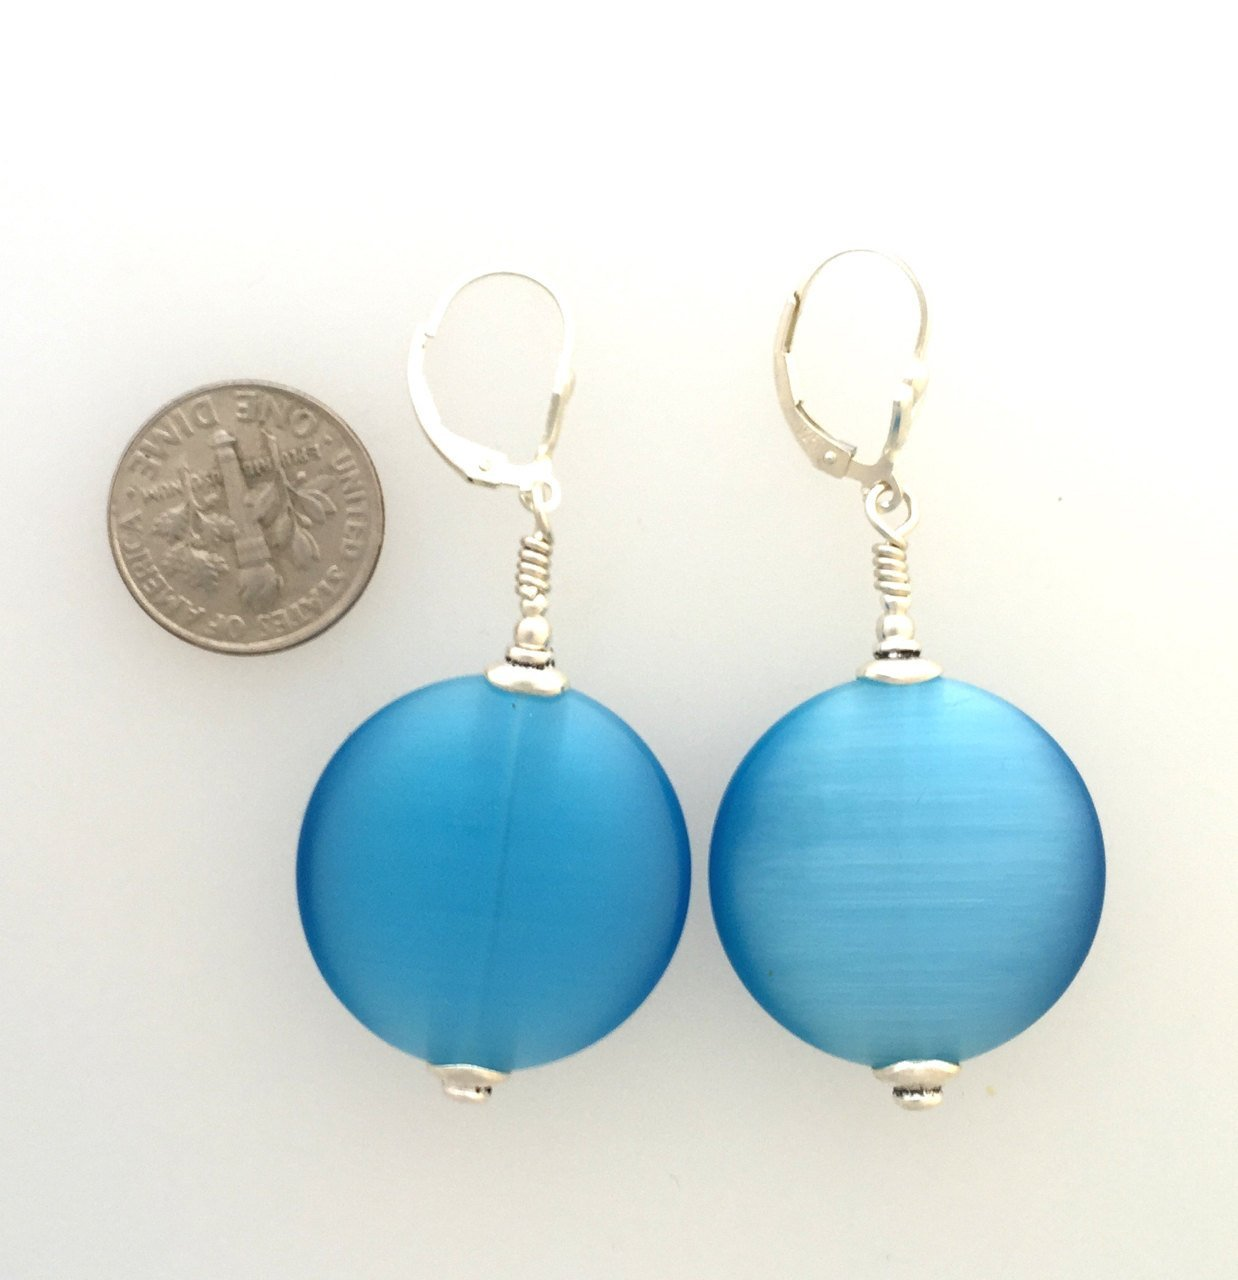 Teal Blue Cat's Eye Bead & Sterling Silver | Earrings